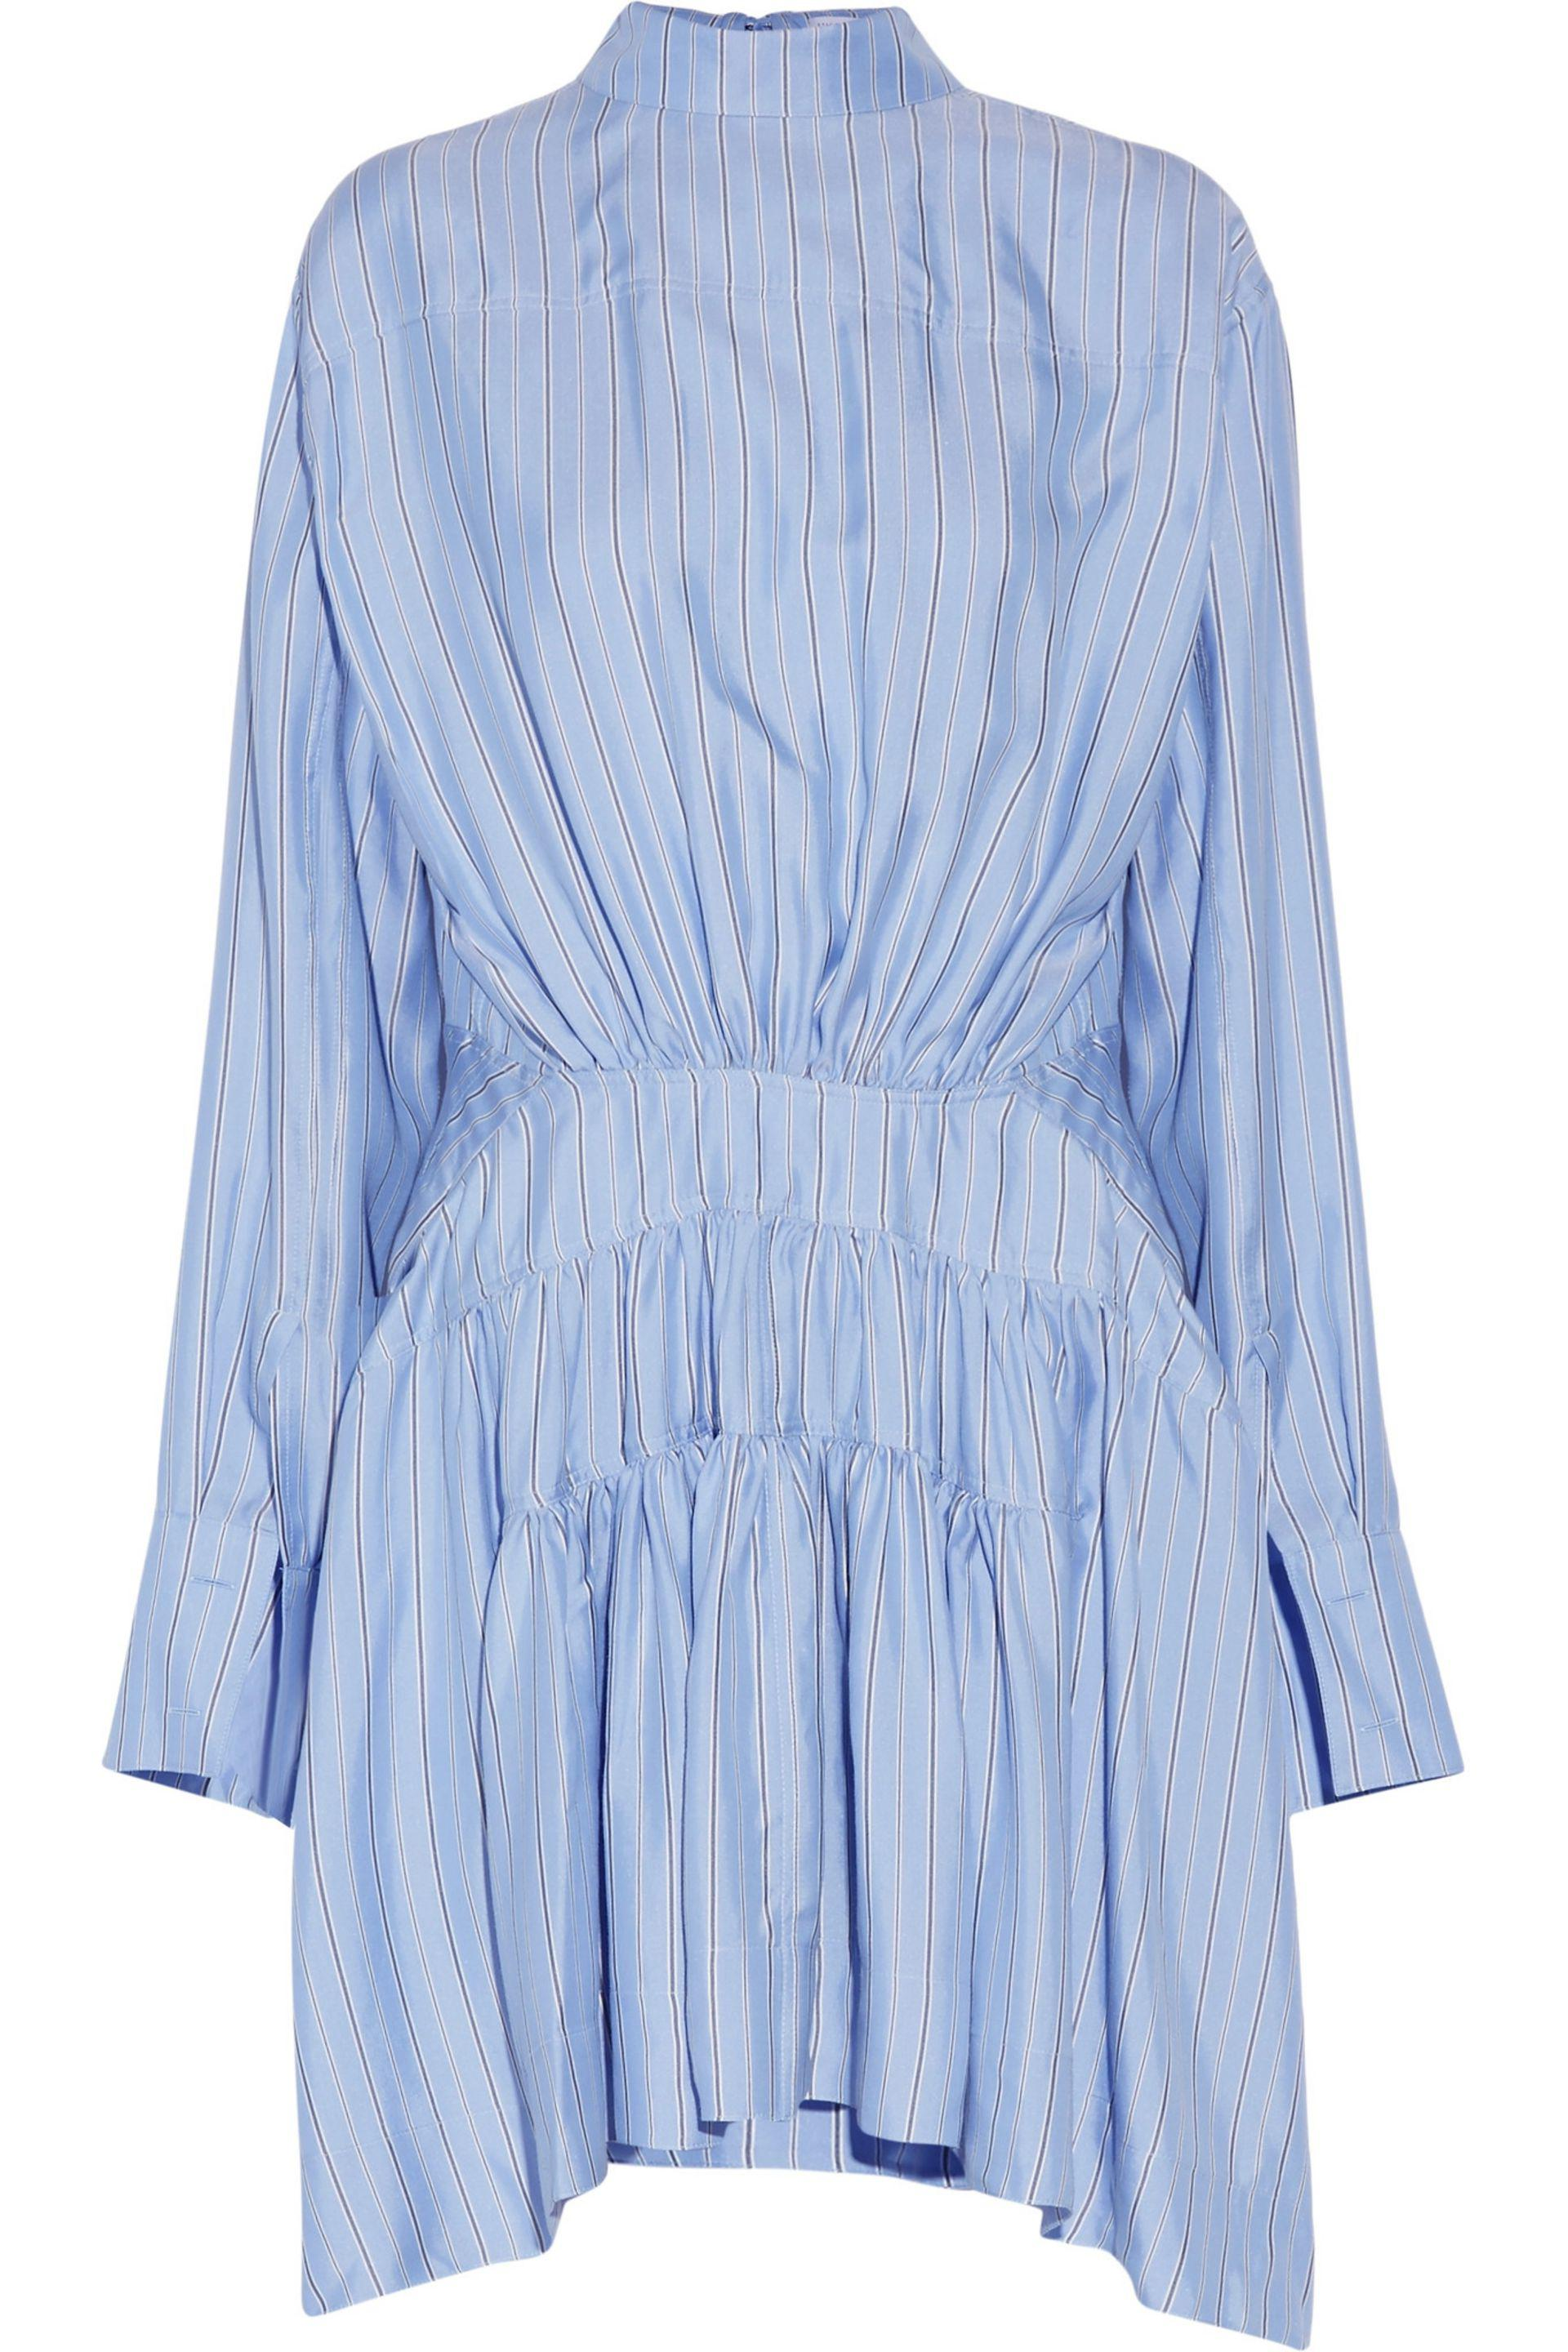 J.w.anderson Woman Open-back Striped Gathered Silk-satin Dress Sky Blue Size 14 J.W.Anderson 3DpXmmyxb